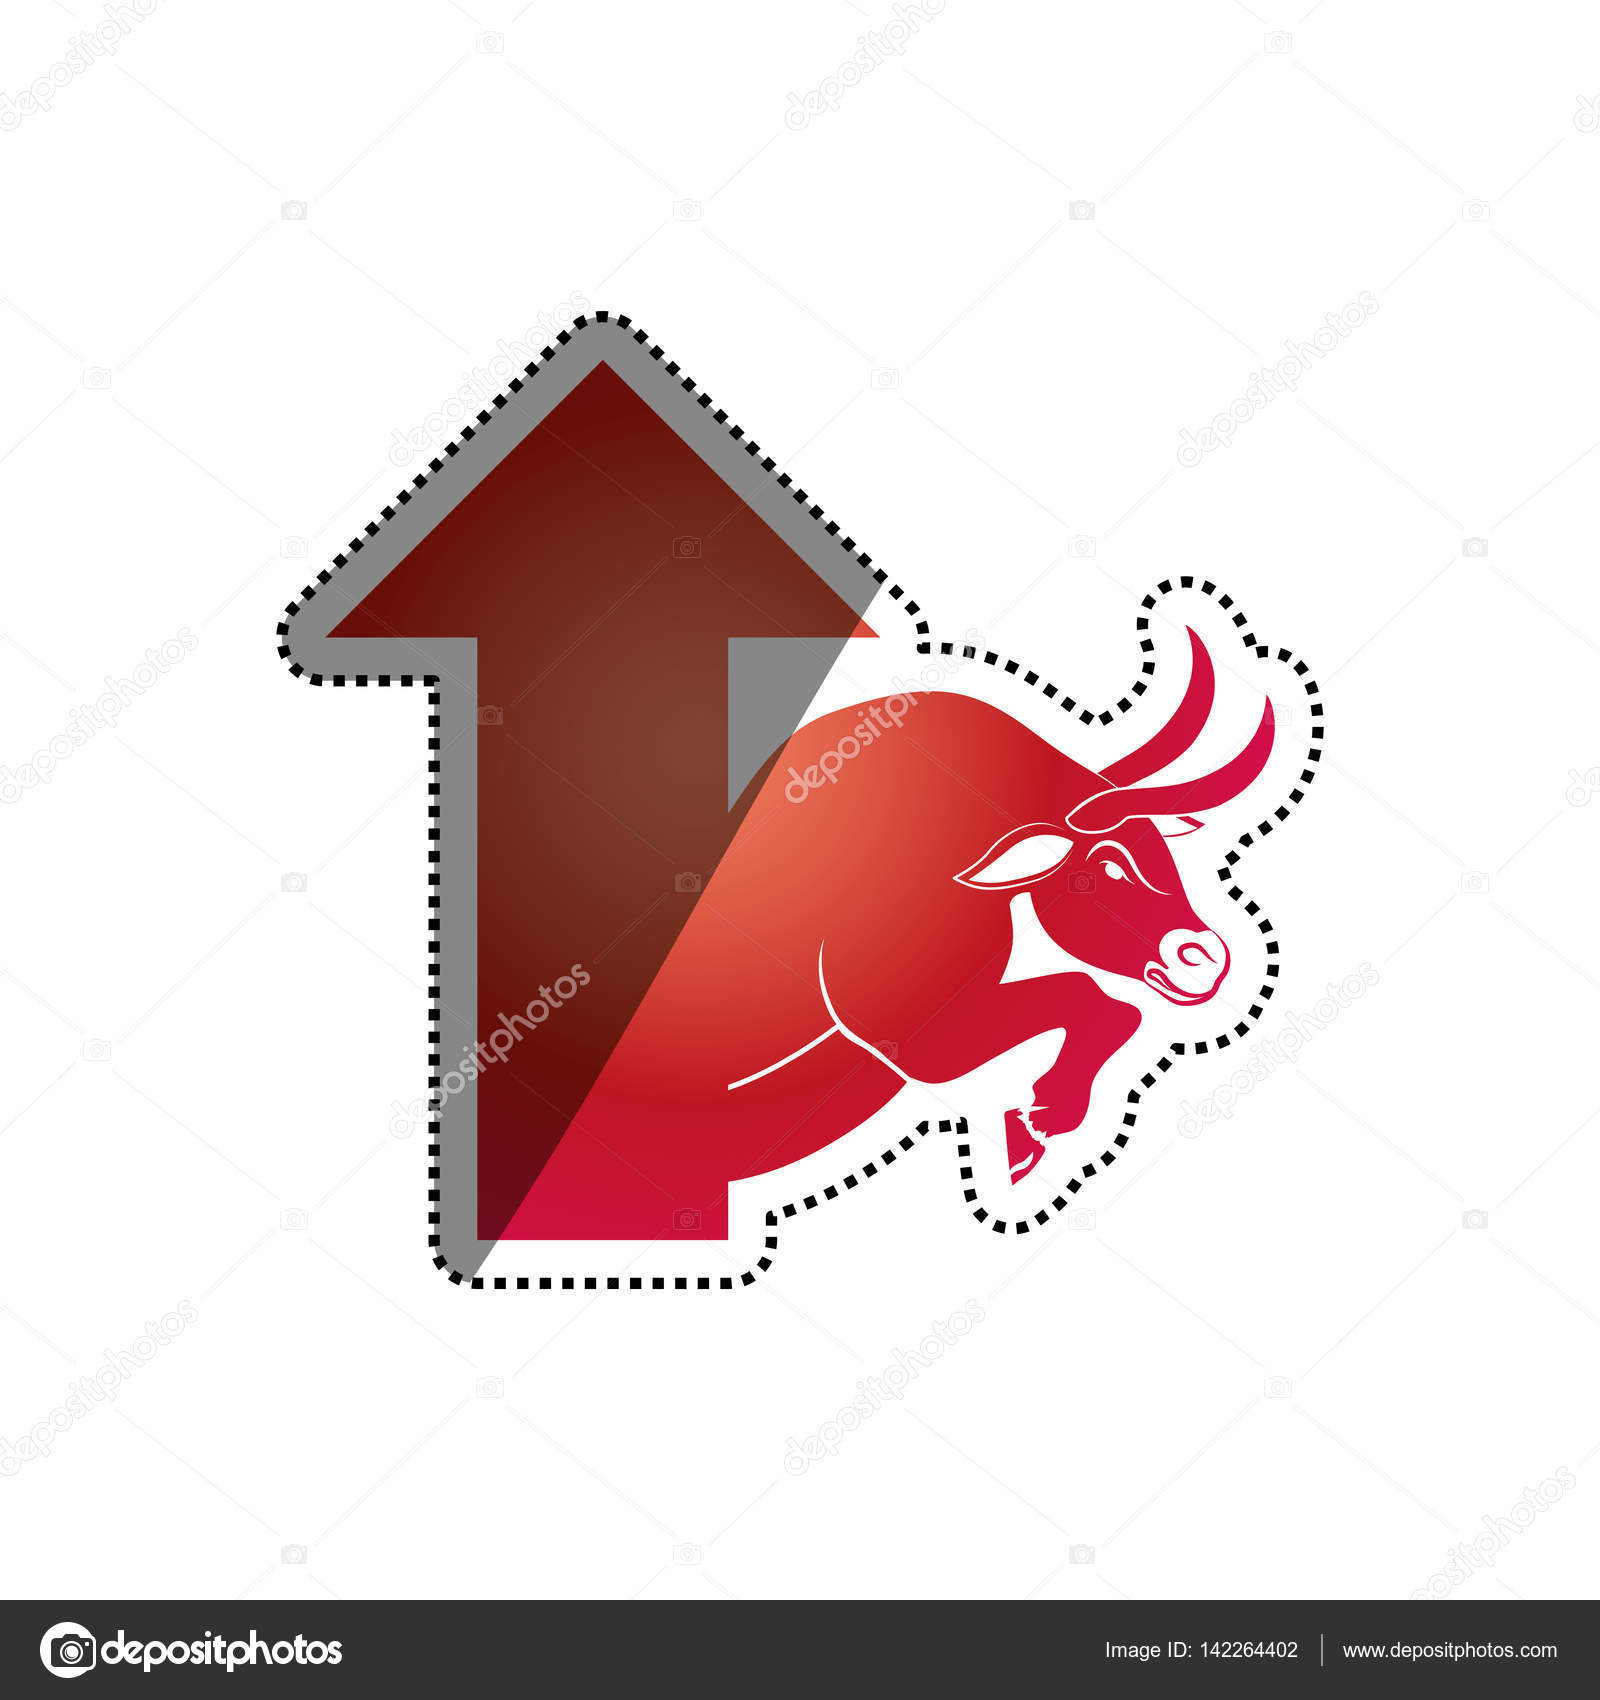 Share market symbol choice image symbol and sign ideas bull stock market symbol stock vector djv 142264402 bull stock market symbol icon vector illustration graphic buycottarizona